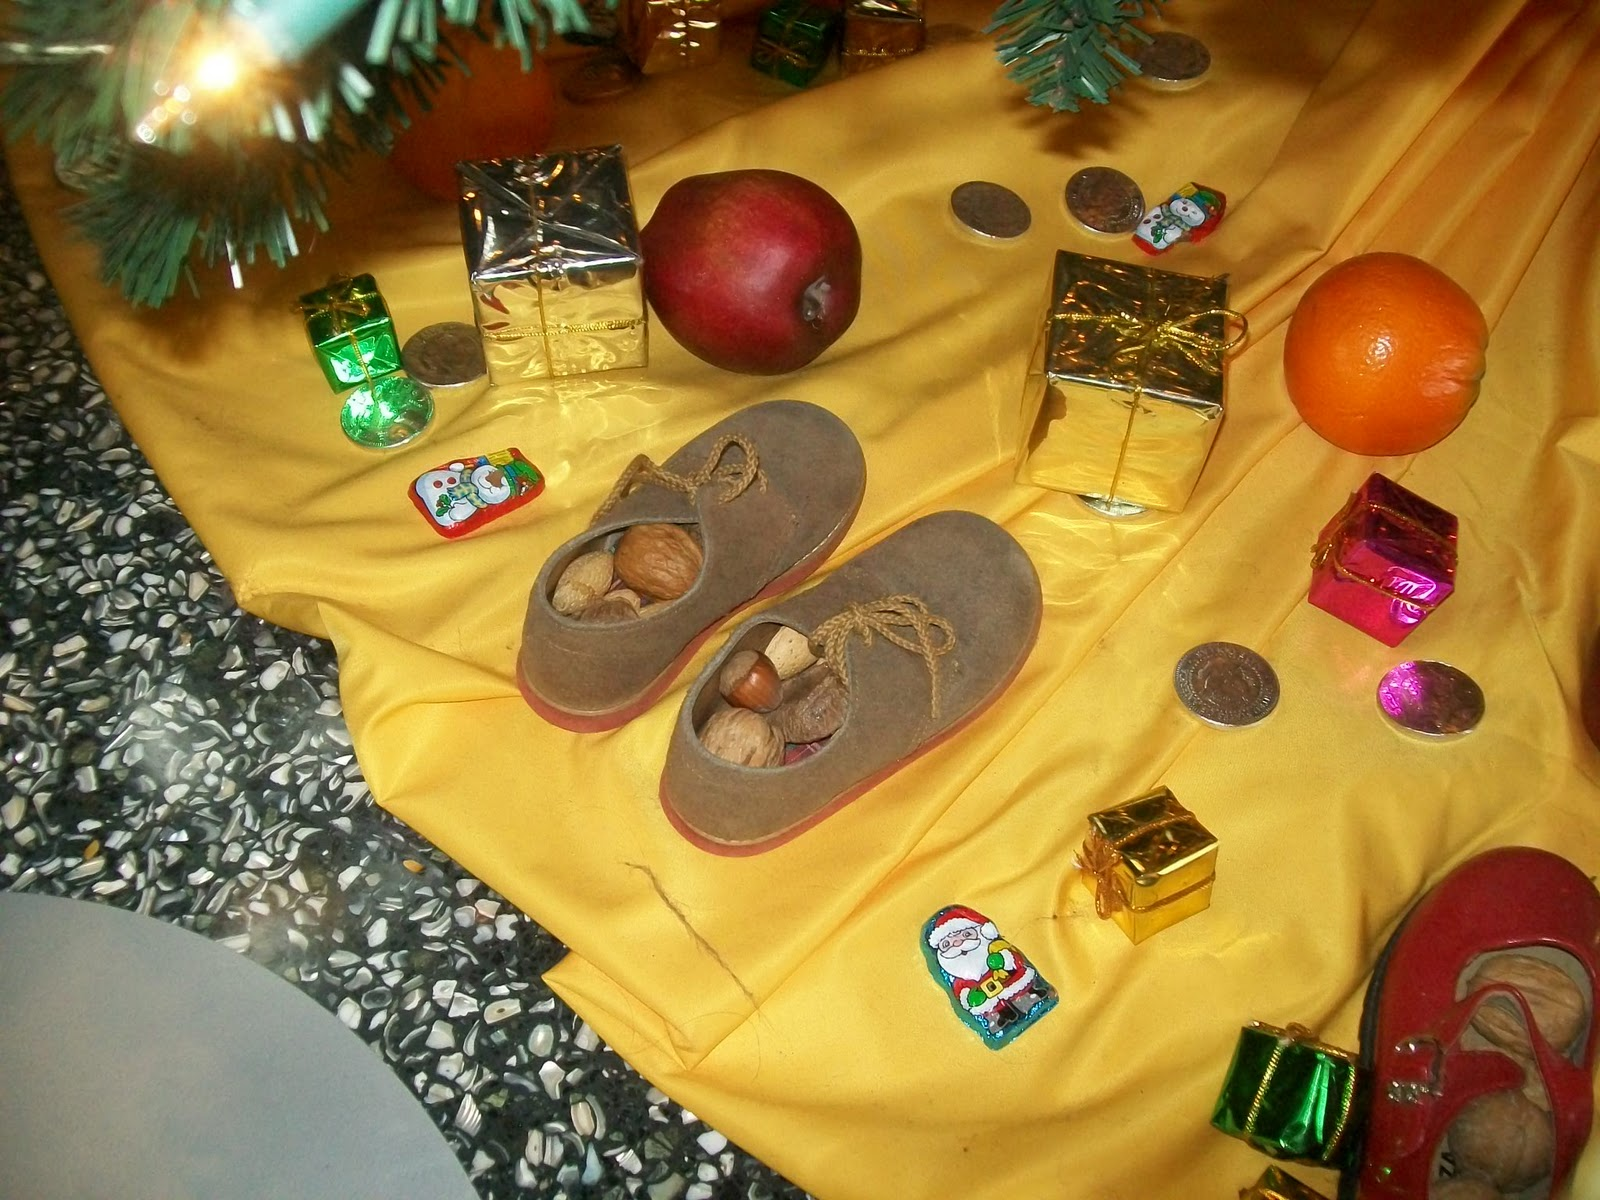 the brazil tree had the prettiest christmas tree skirt arrangement - Christmas Traditions In Brazil